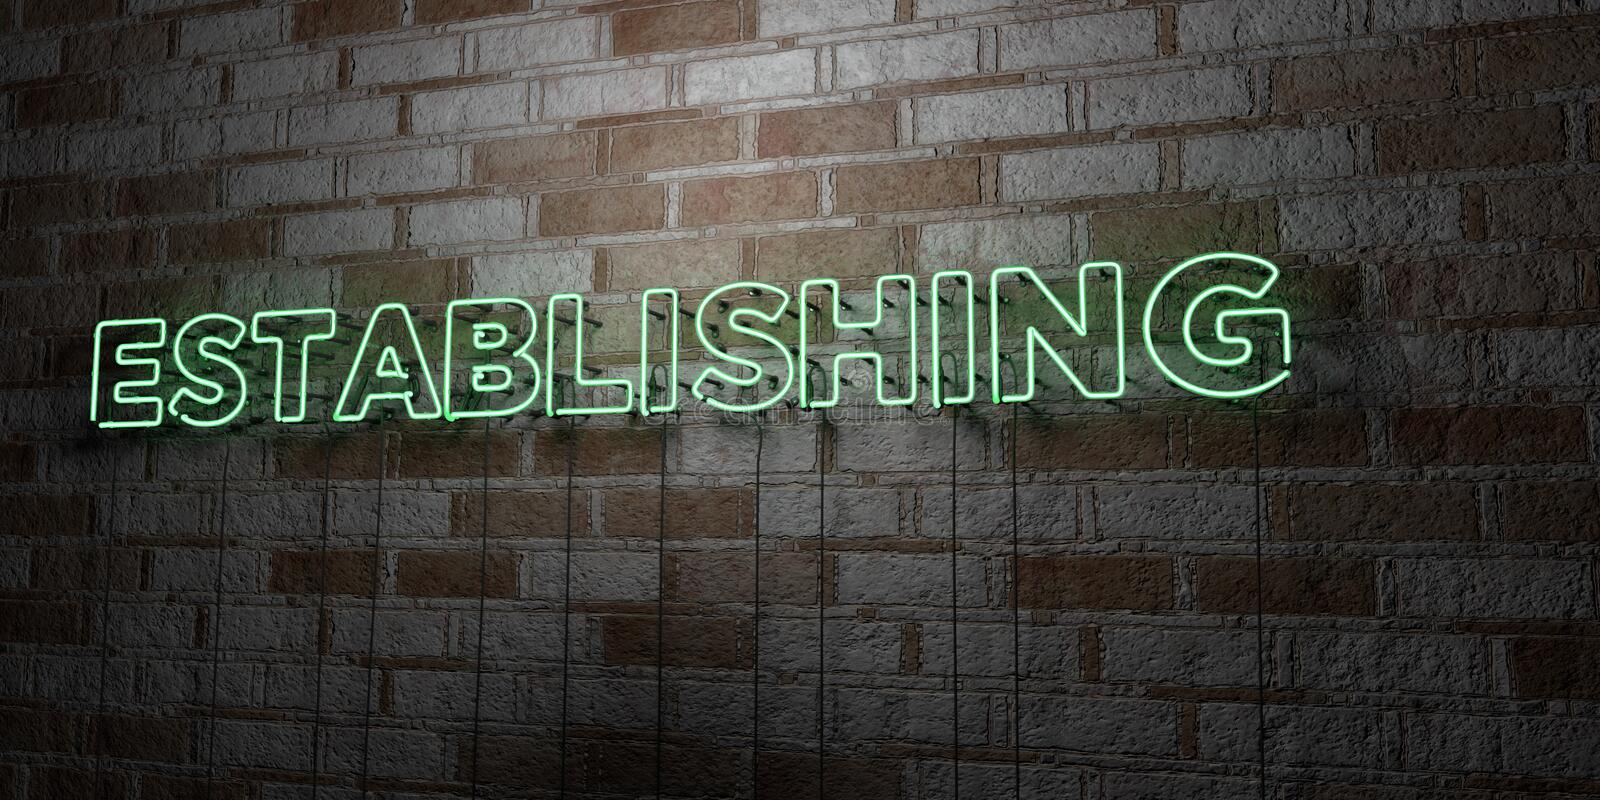 ESTABLISHING - Glowing Neon Sign on stonework wall - 3D rendered royalty free stock illustration. Can be used for online banner ads and direct mailers stock illustration